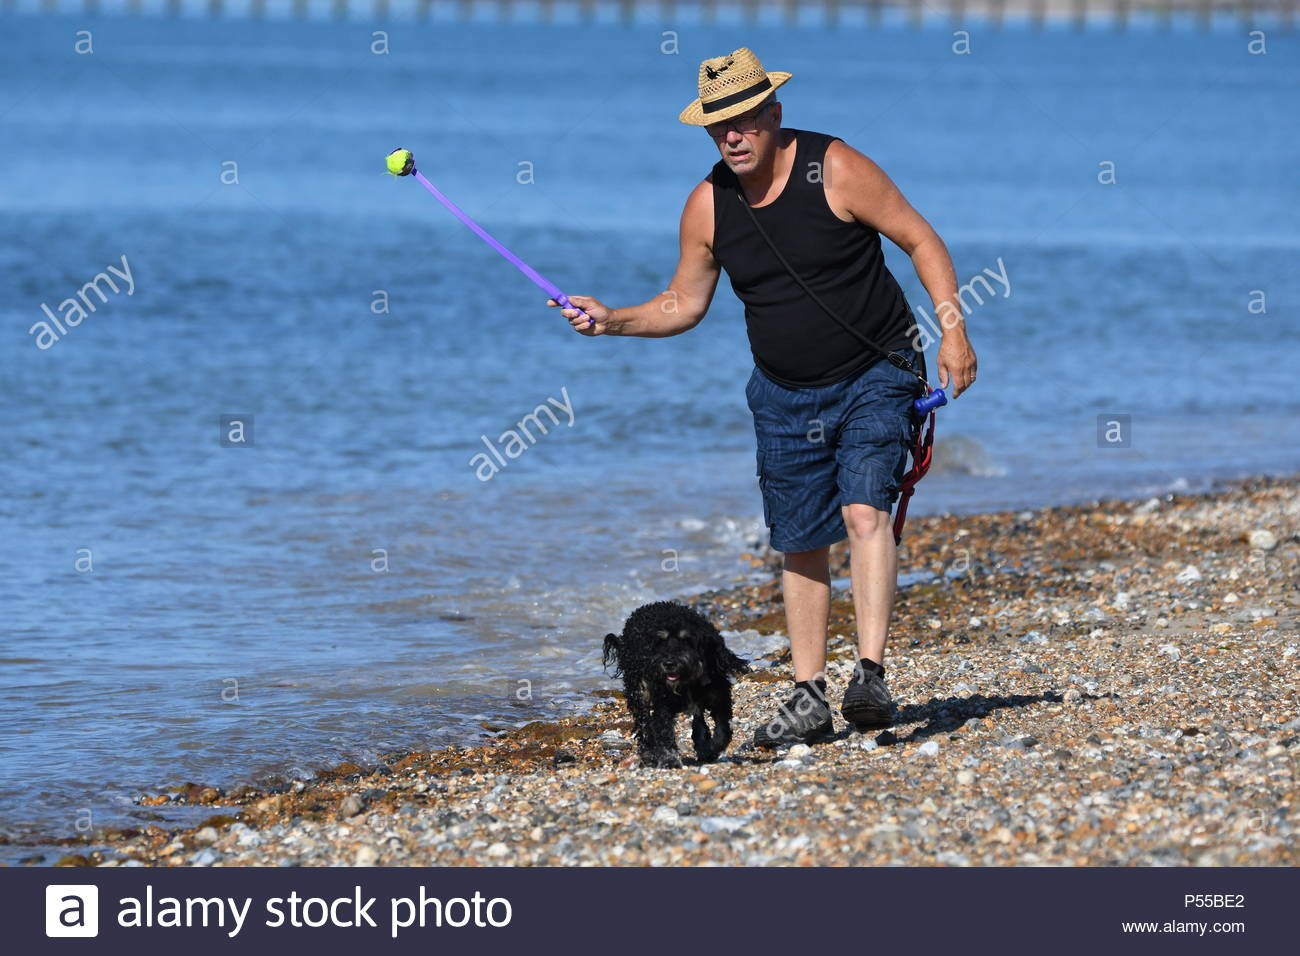 Littlehampton, UK. Monday 25th June 2018. A man walks a dog on the beach on a very warm and sunny morning in Littlehampton, on the South Coast. Credit: Geoff Smith / Alamy Live News. Stock Photo